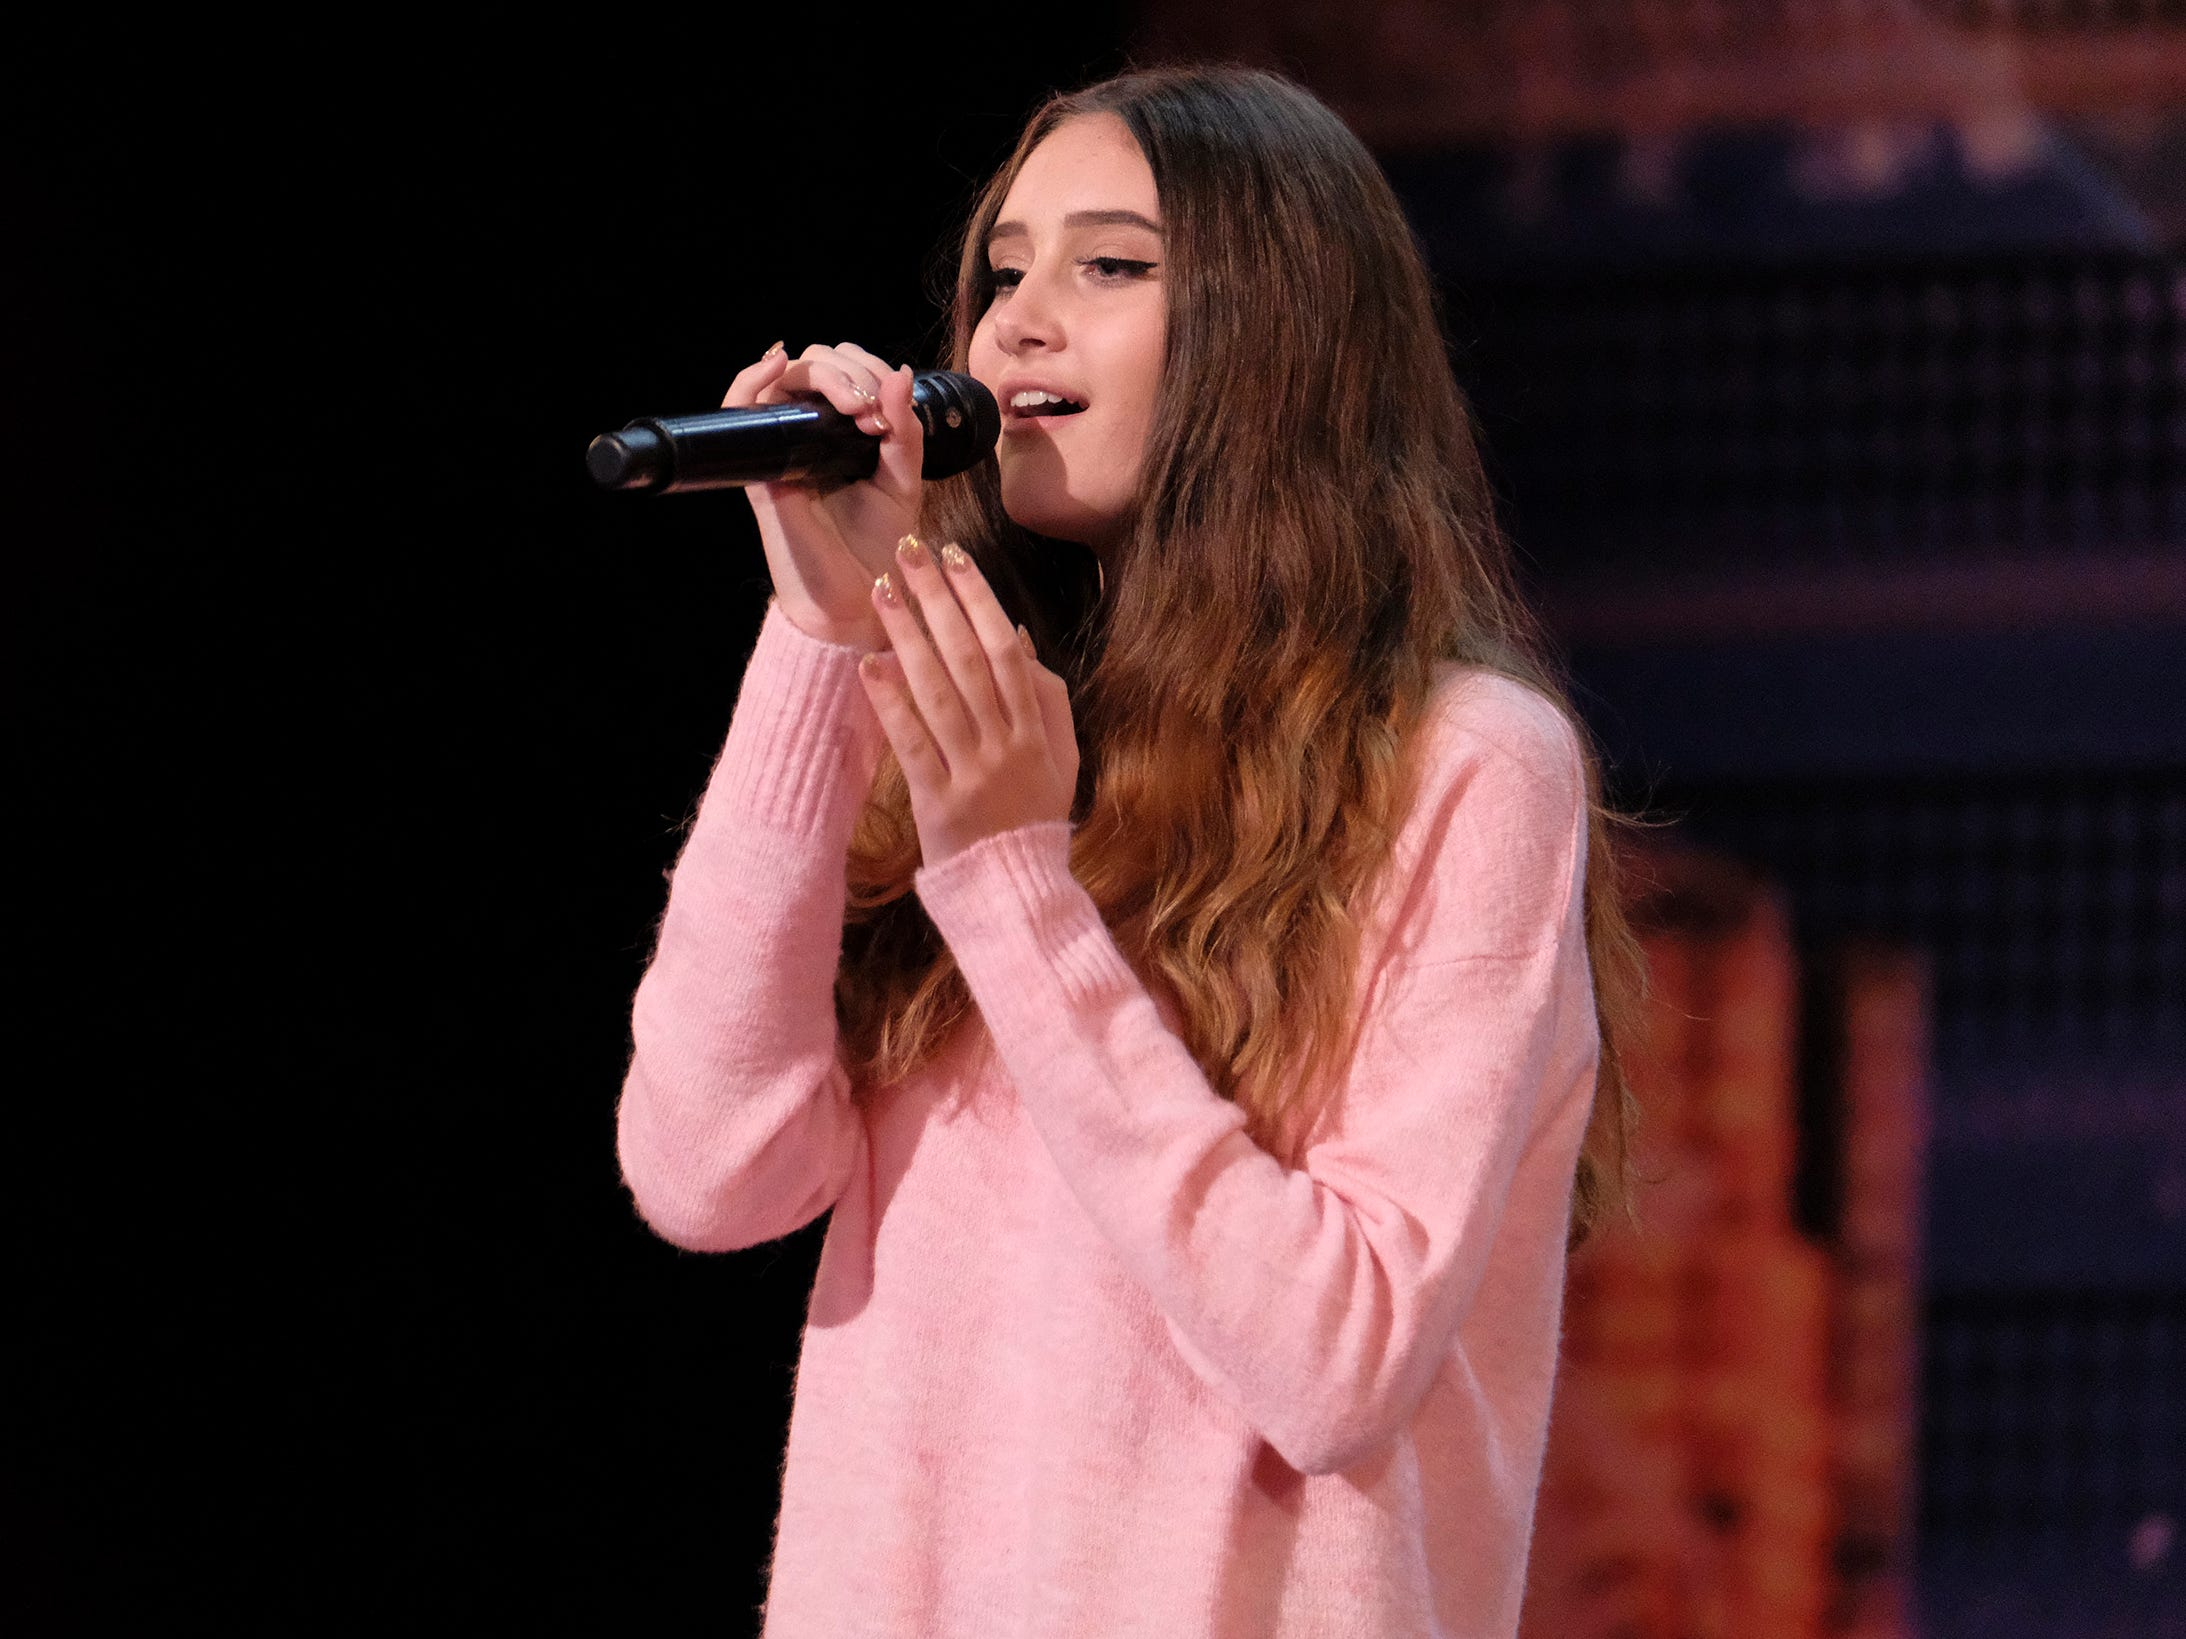 Singer Makayla Phillips earned Heidi Klum's Golden Buzzer